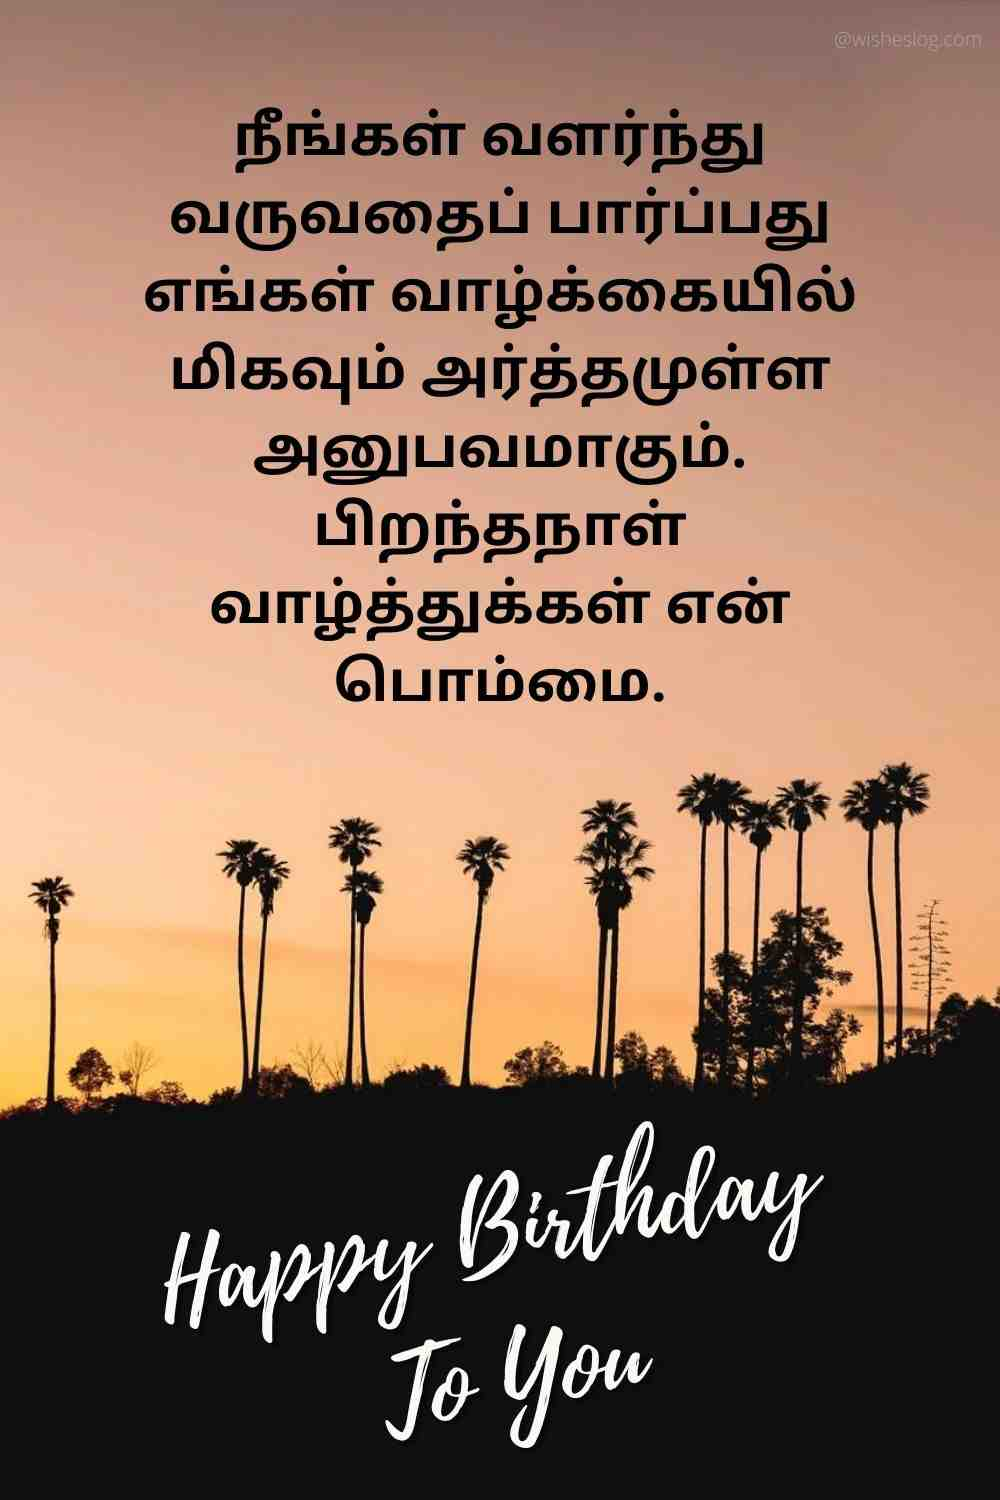 birthday wishes in tamil for daughter